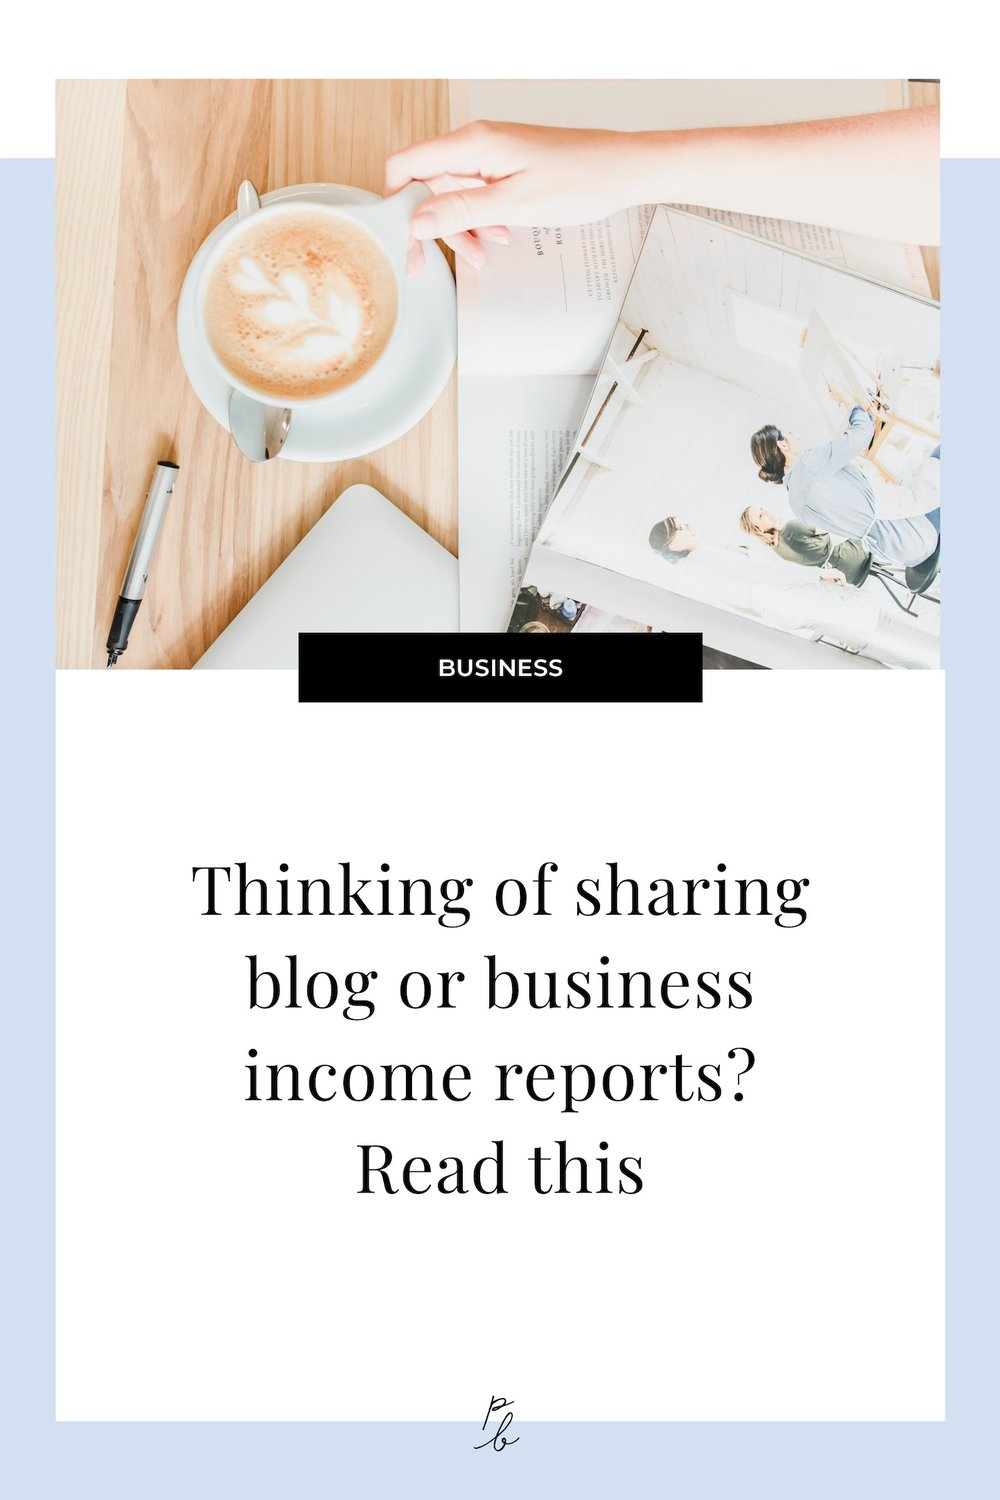 Thinking of sharing blog or business income reports? Read this.jpg